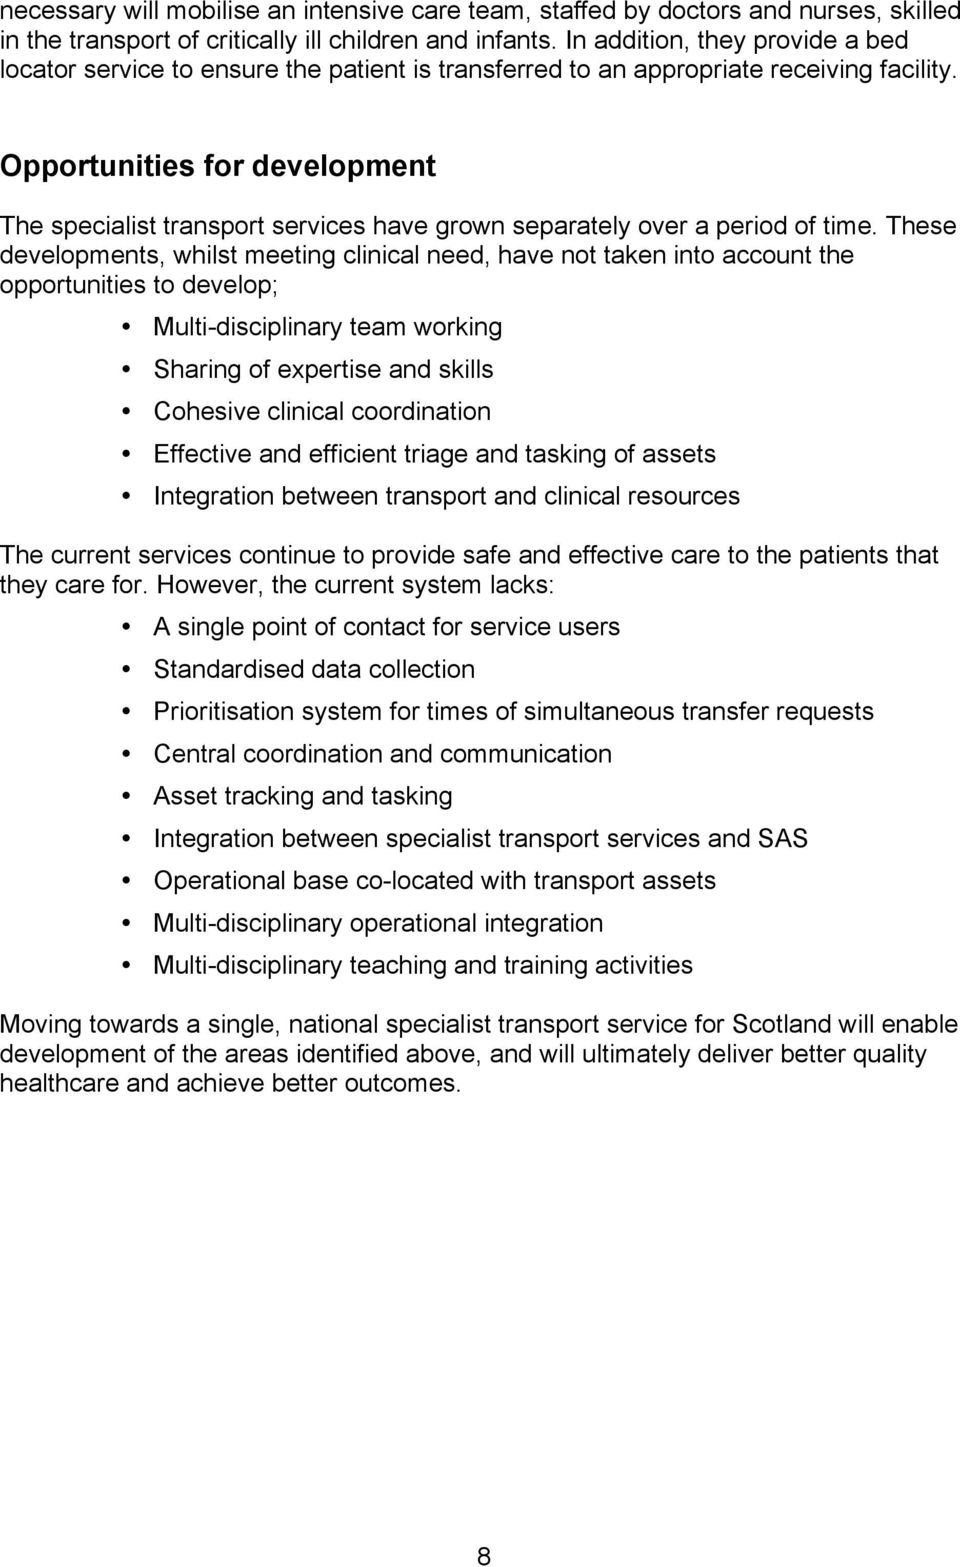 Opportunities for development The specialist transport services have grown separately over a period of time.